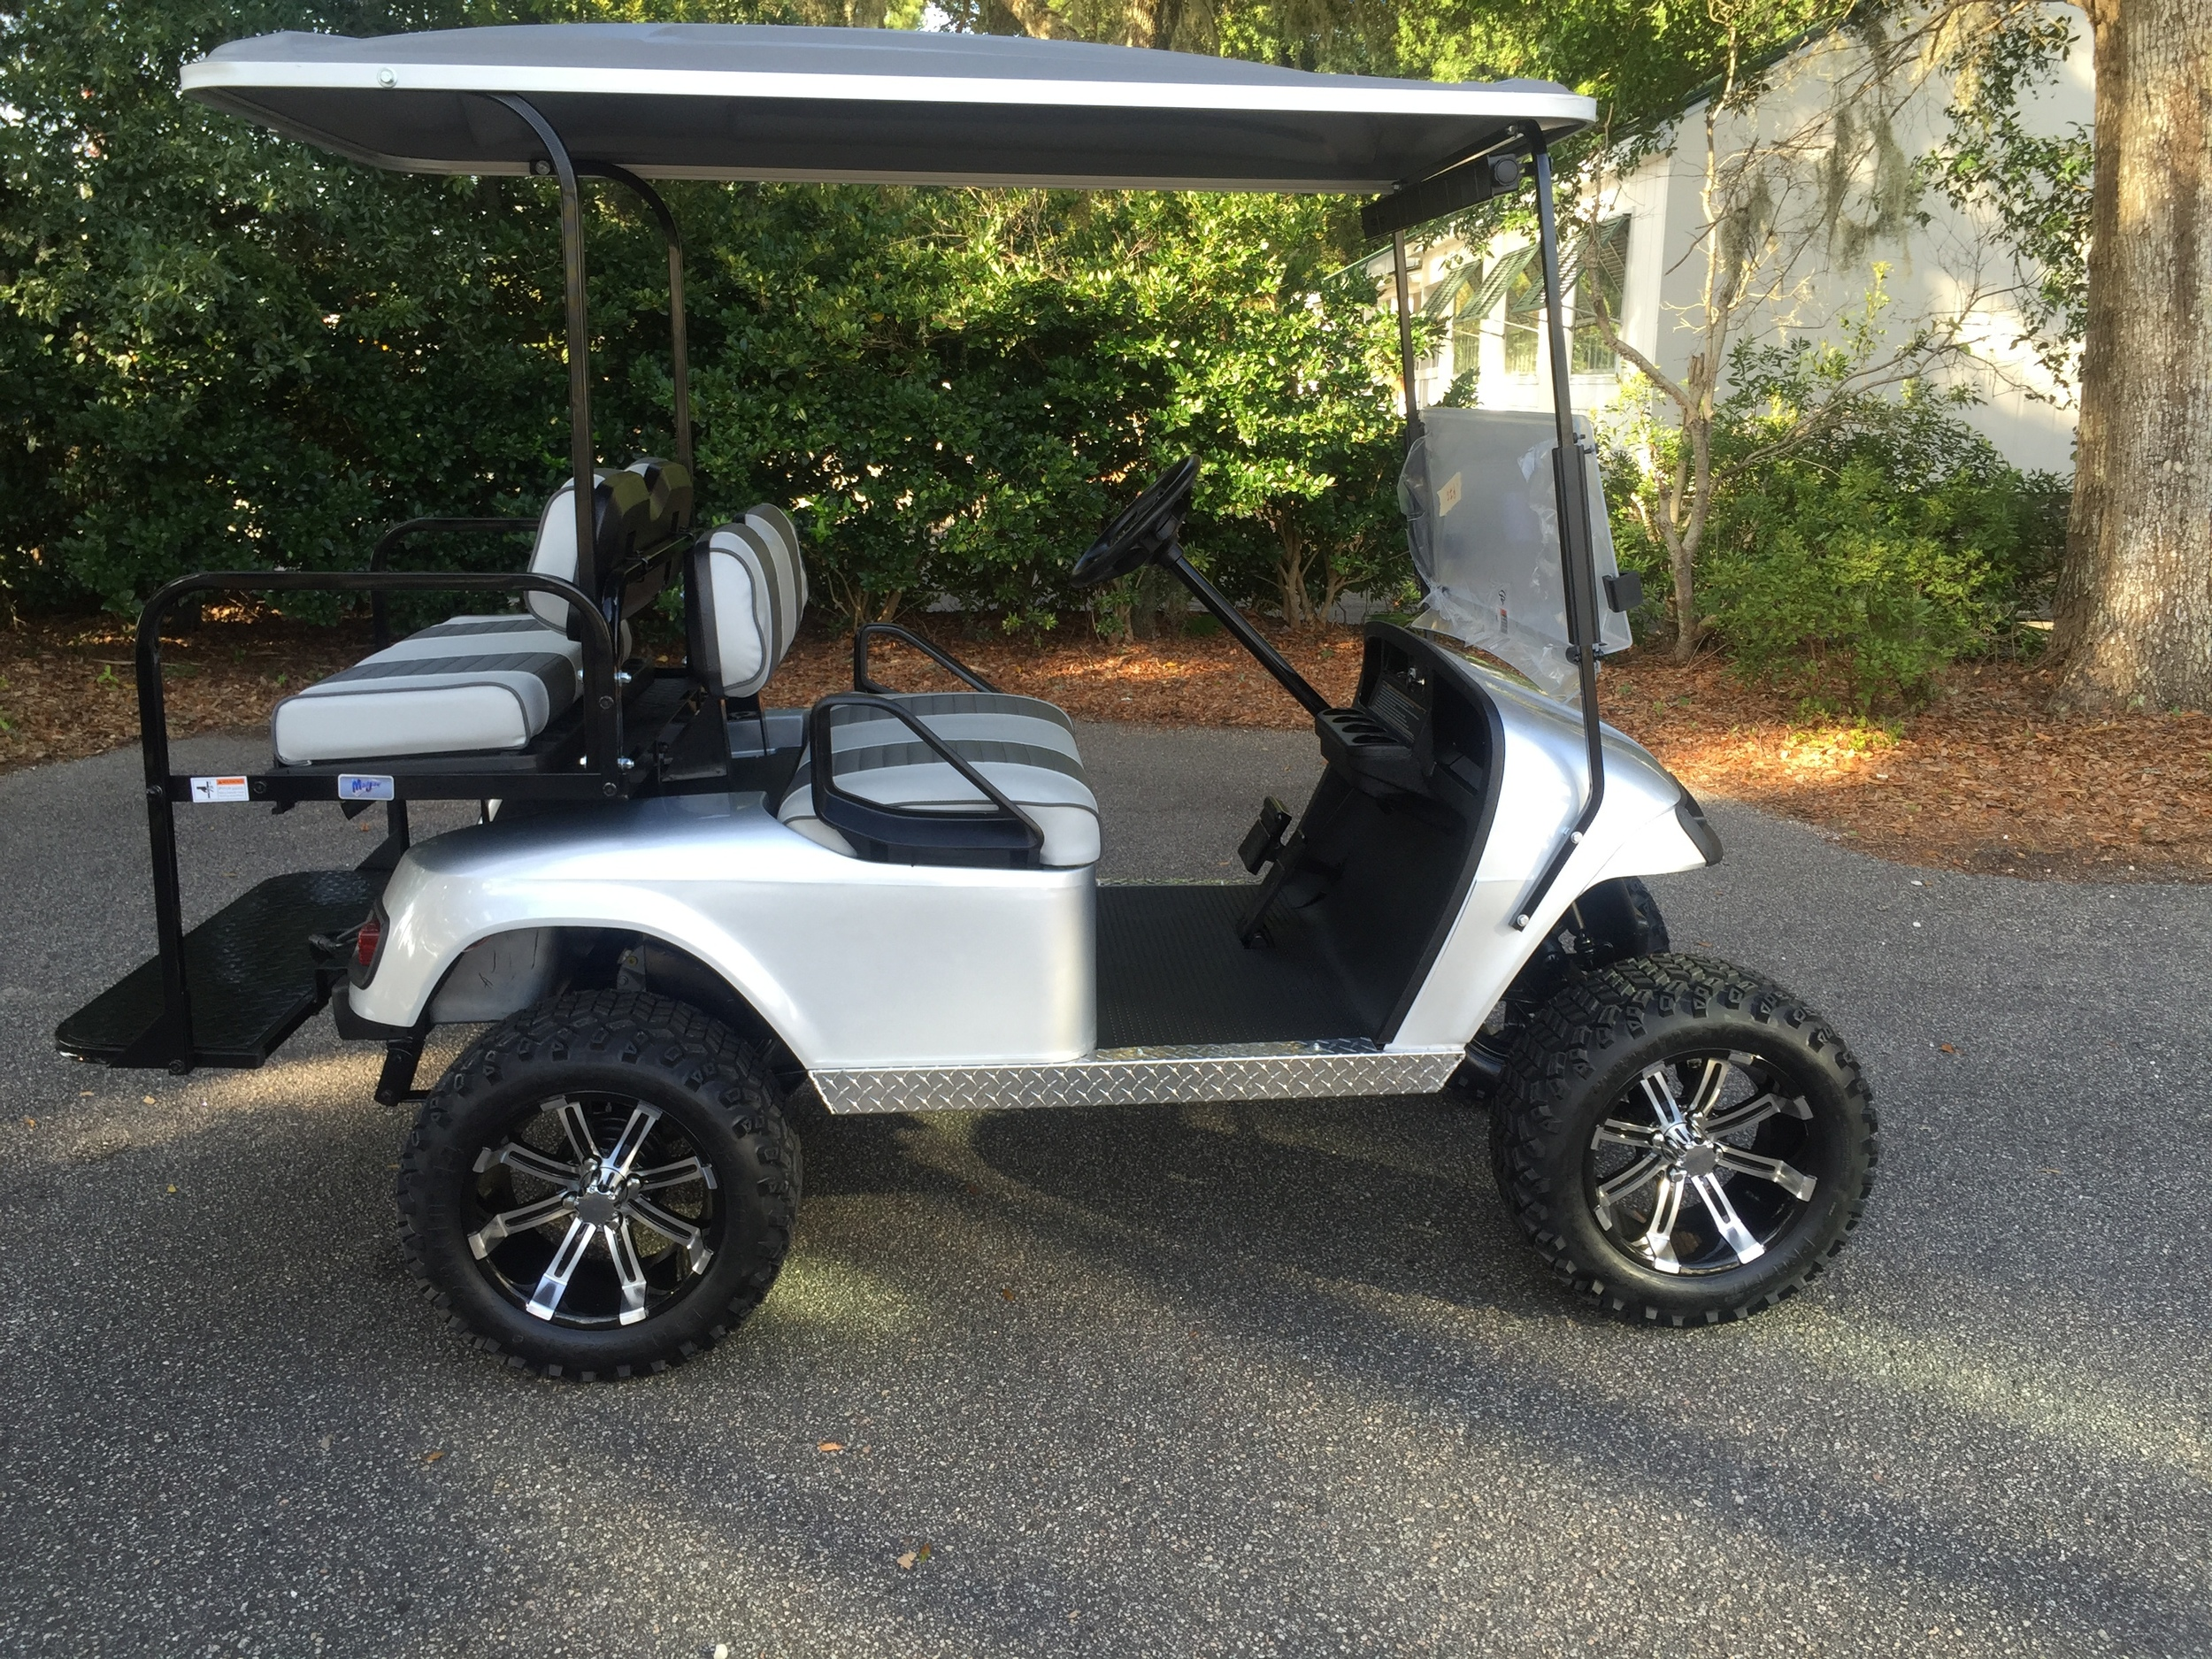 Silver EZGO Lifted Cart  Gray/charcoal seats, gray extended top, new 2018 batteries, high speed code, LED lights, Backlash (23x10x14) tires, mirror, flip windshield, and state of charge meter